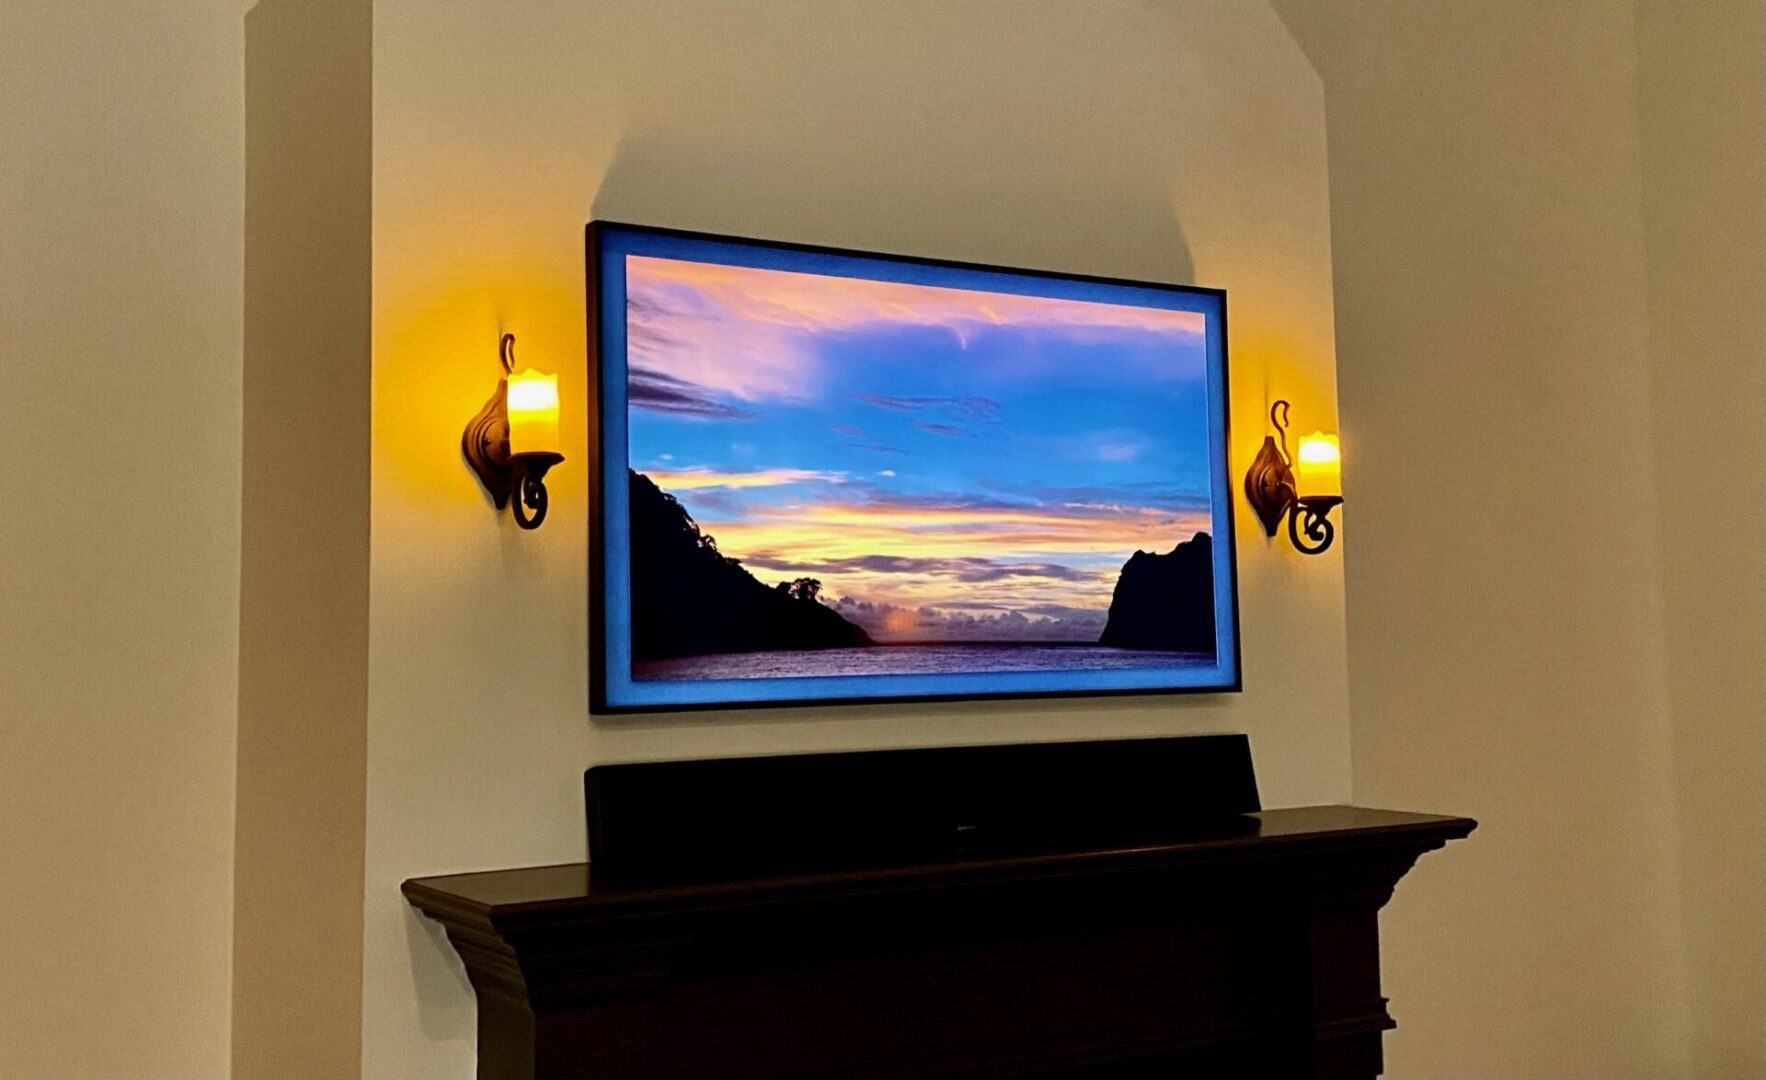 Samsung frame TV Installation in Birmingham Al